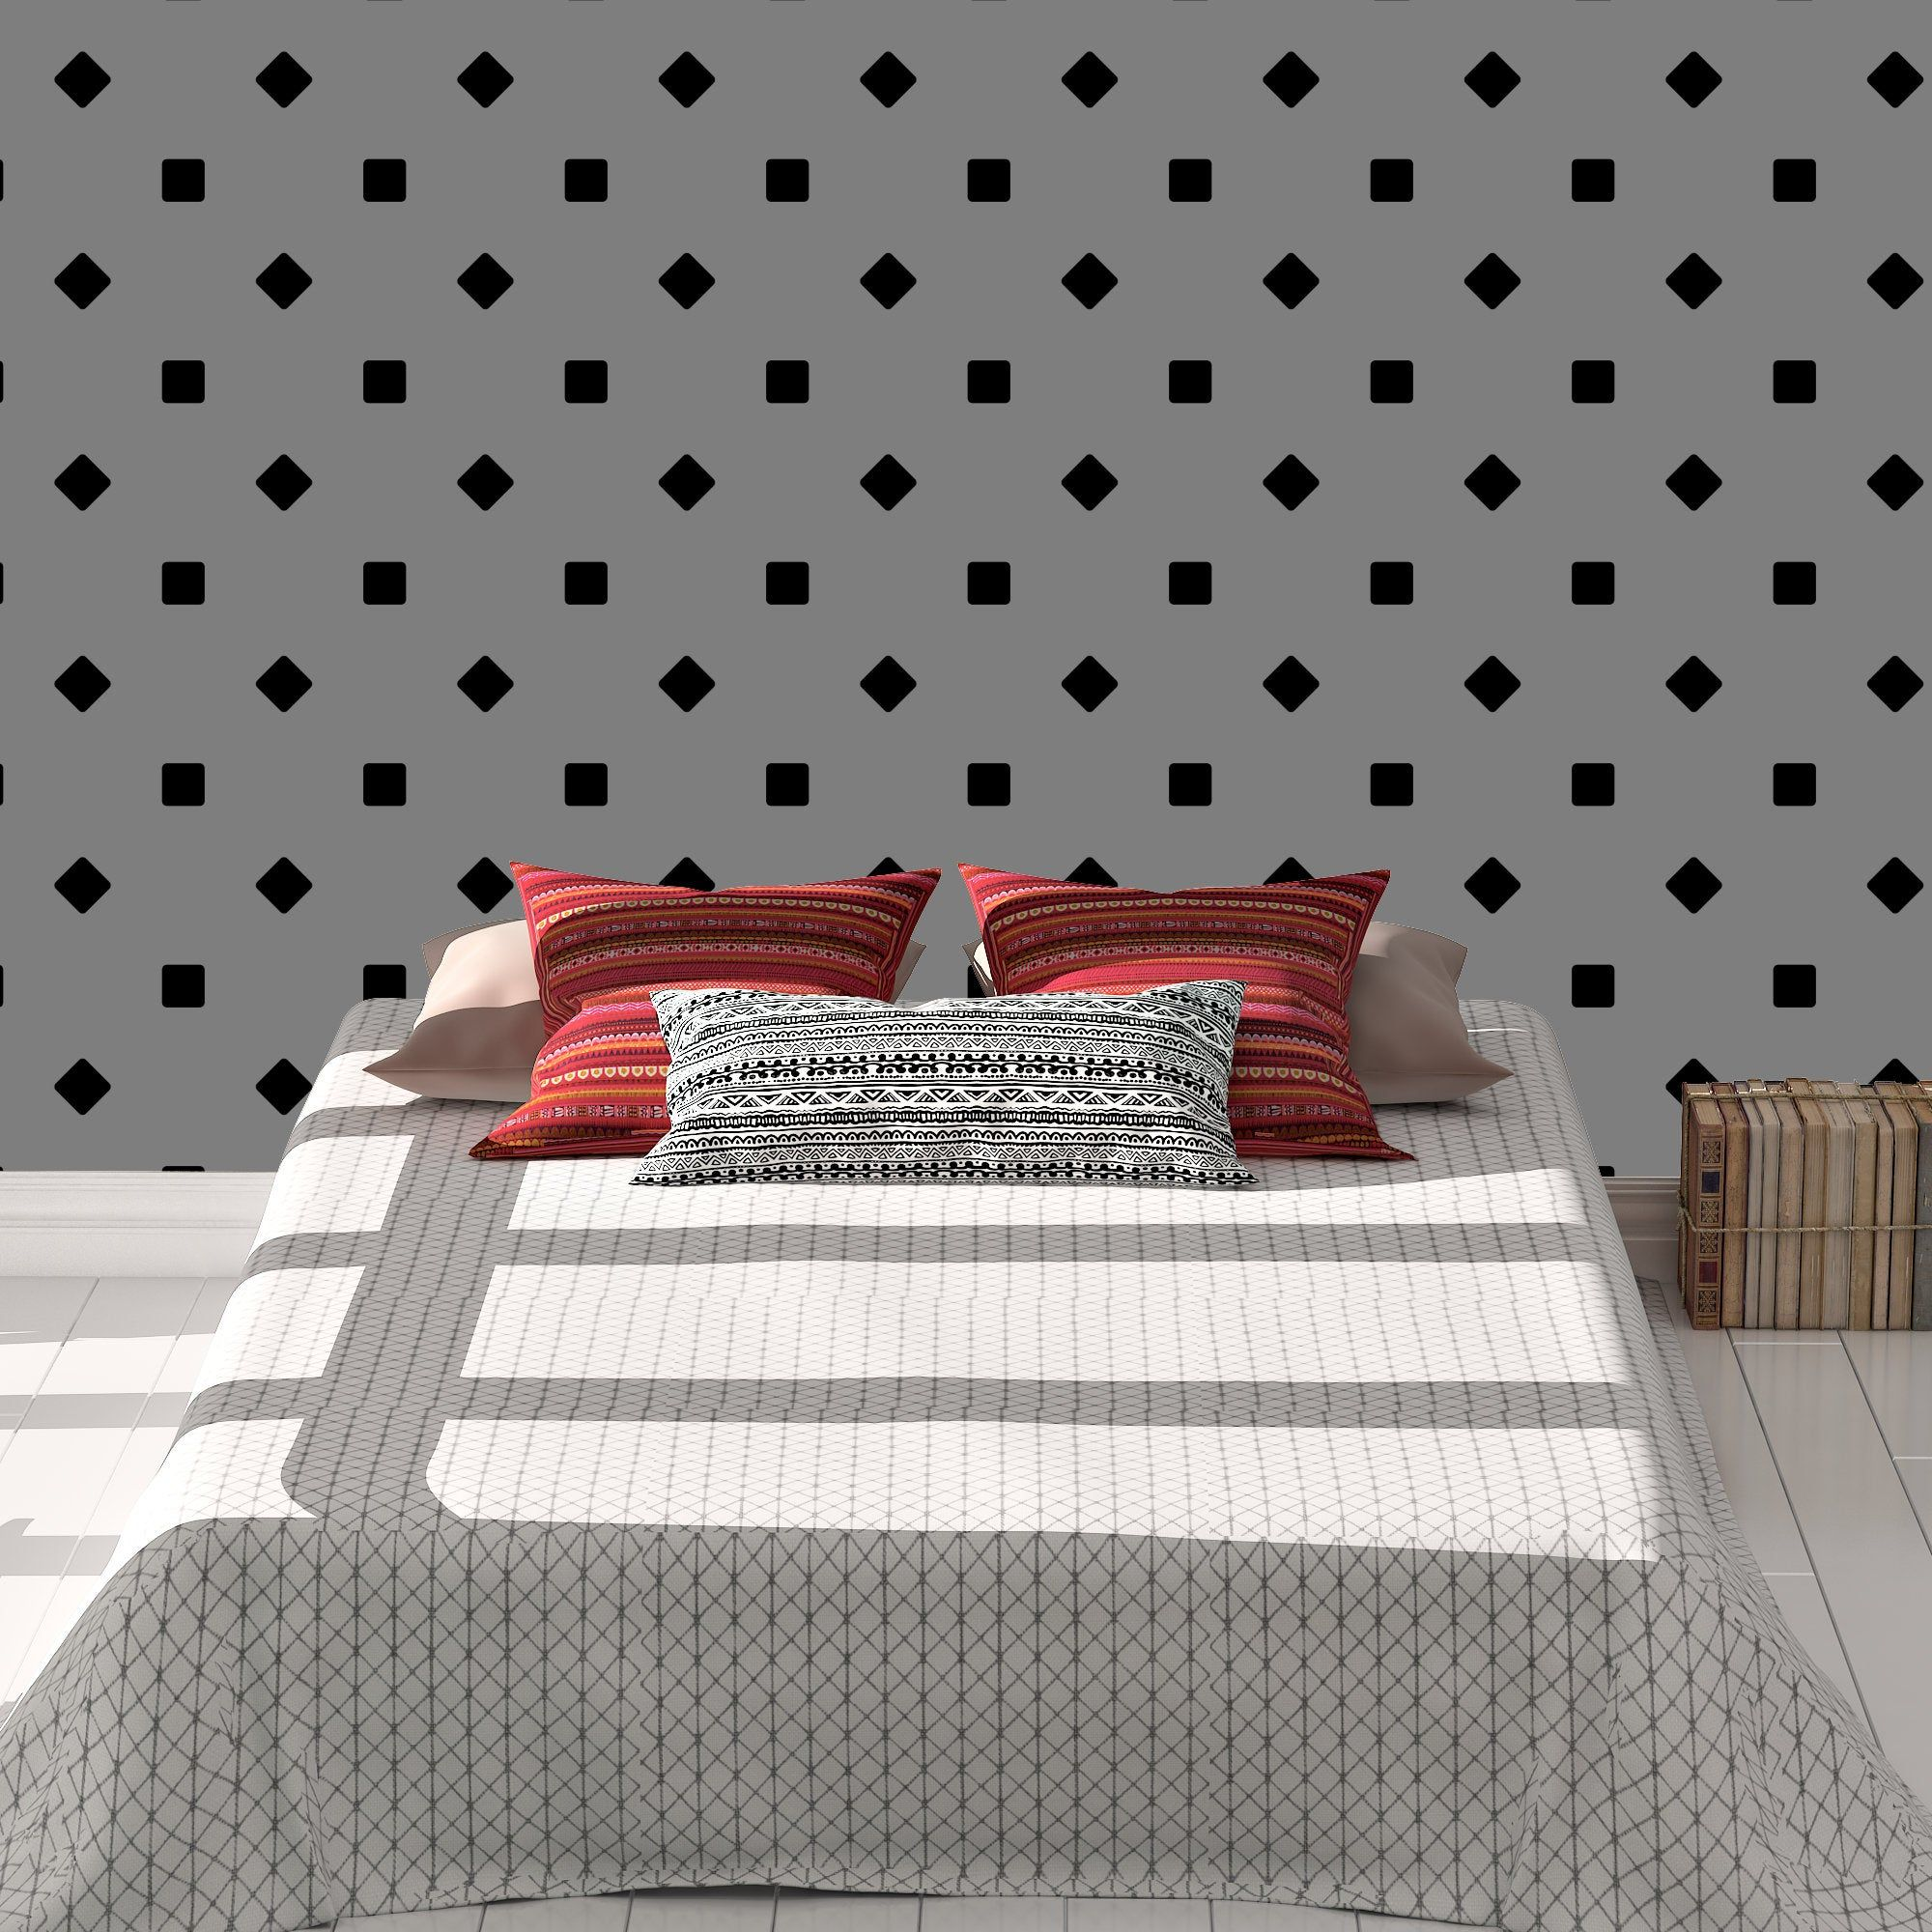 Gray Or White Solid Squares Diamonds Wallpaper Wall Decor Peel And Stick Wallpaper Removeable Repositi Wallpaper Walls Decor Wall Wallpaper Diamond Wallpaper